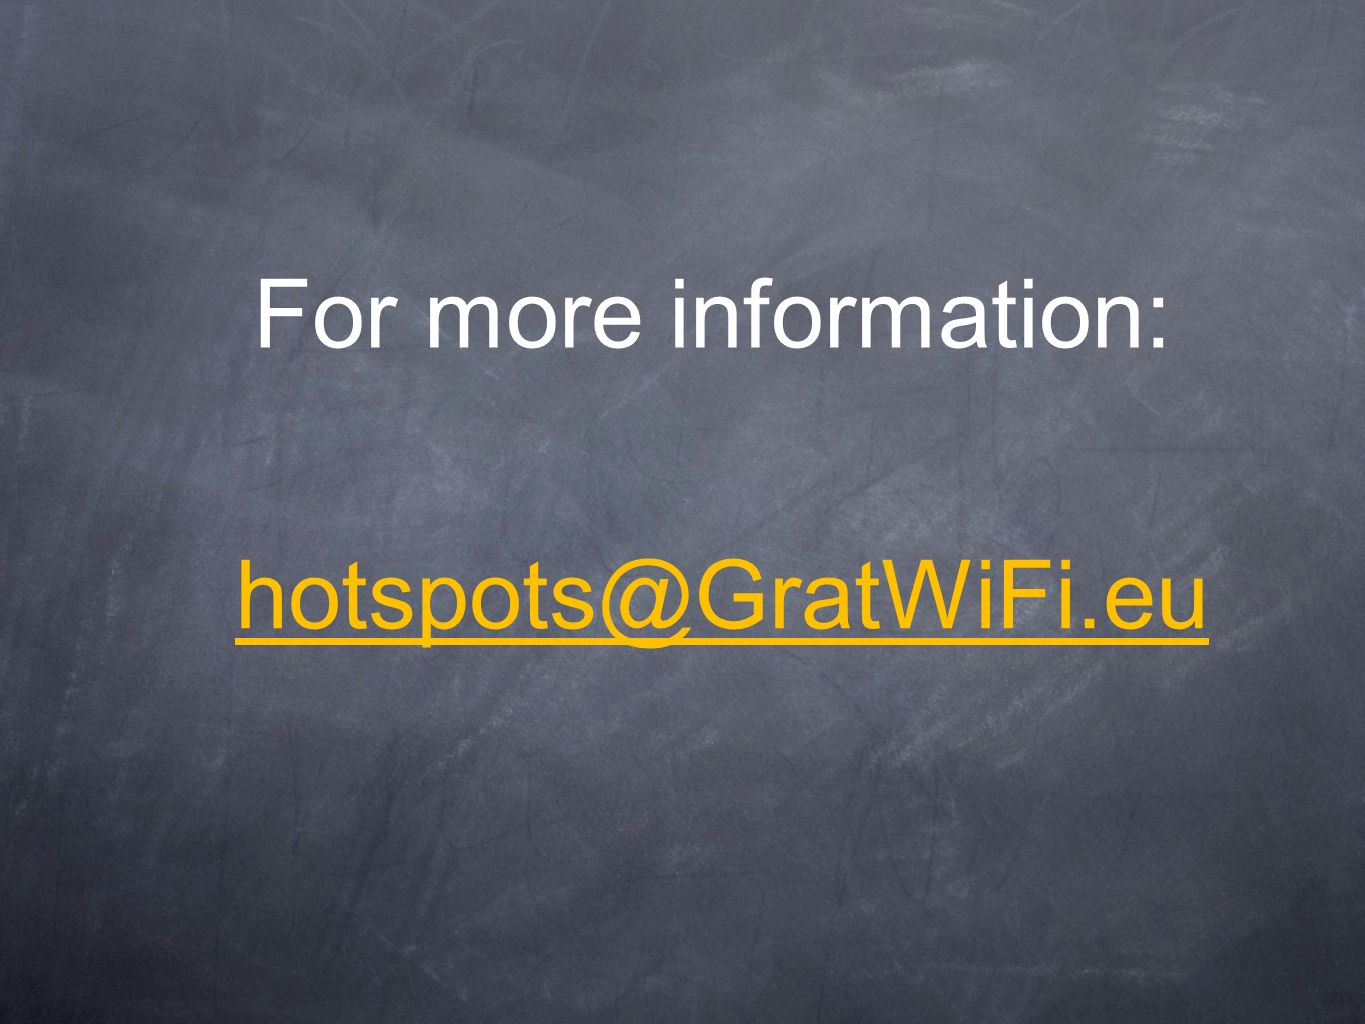 For more information: hotspots@GratWiFi.eu